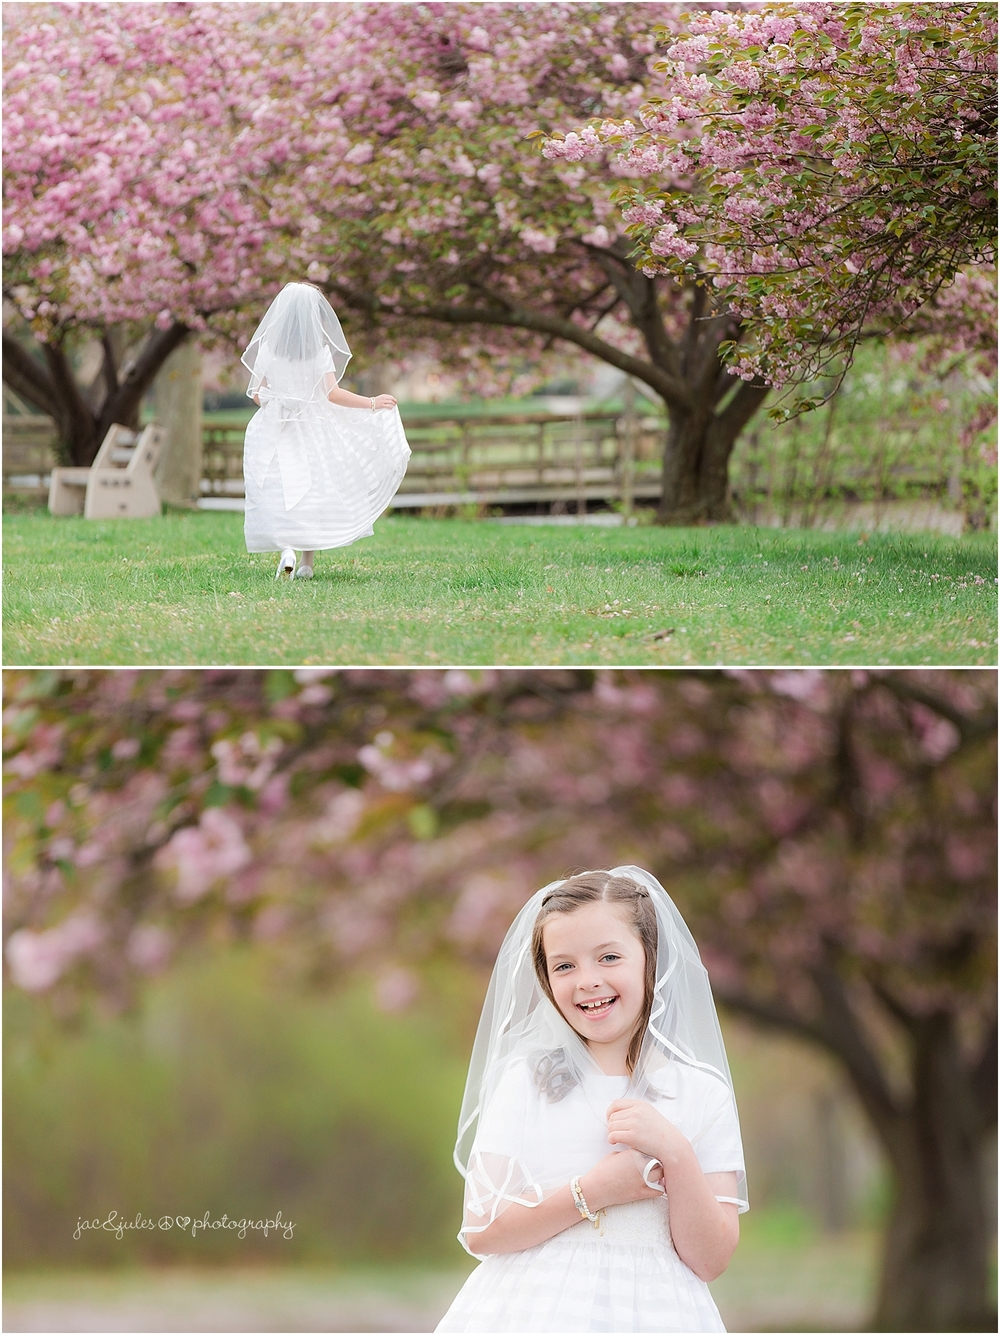 jacnjules photographs communion in Spring Lake NJ using the Cherry Blossoms